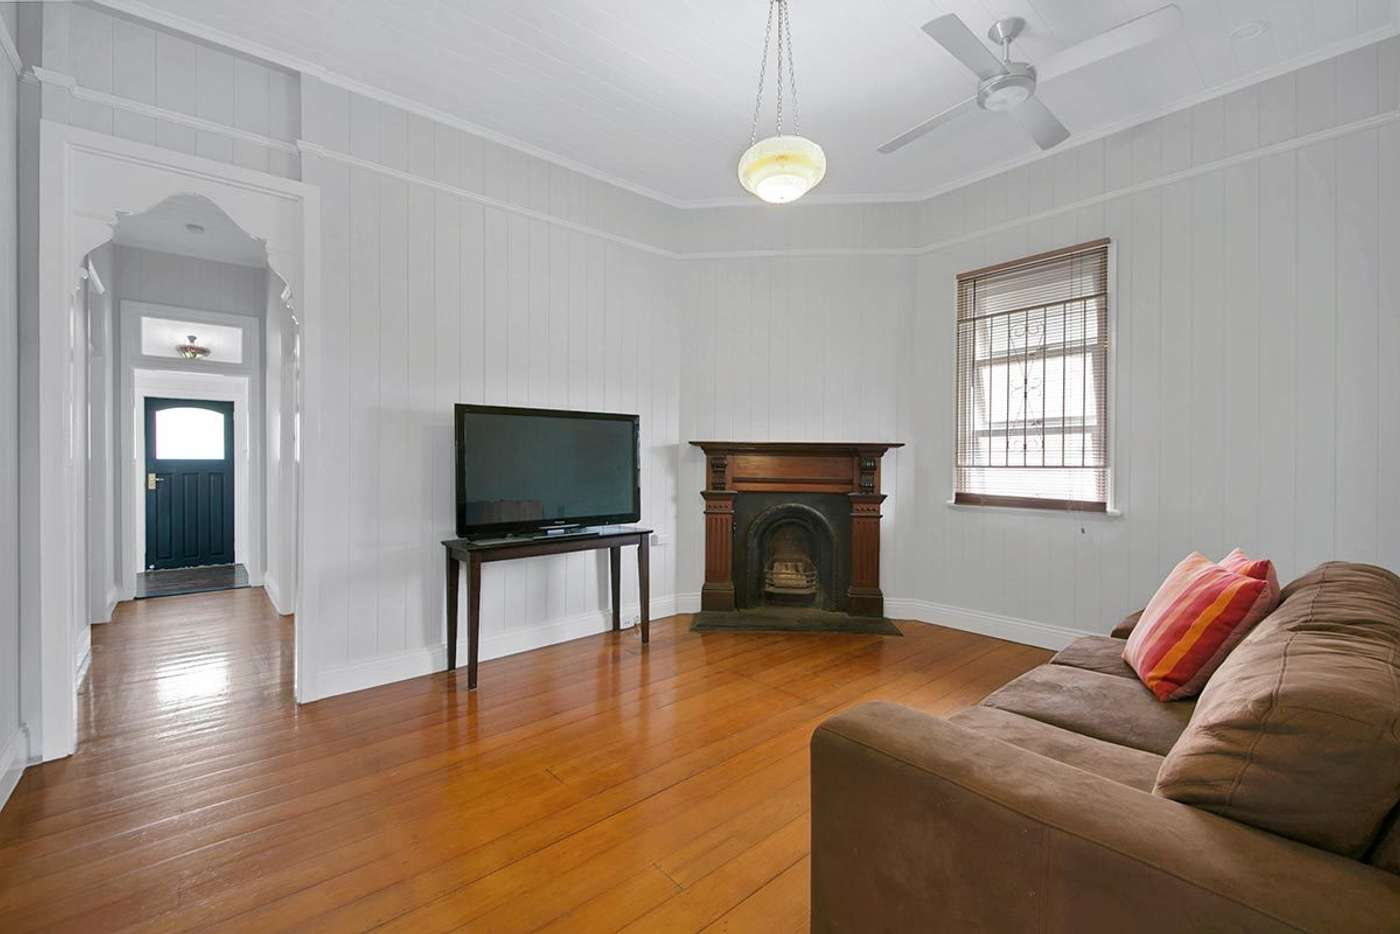 Fifth view of Homely house listing, 64 Prospect Terrace, Kelvin Grove QLD 4059